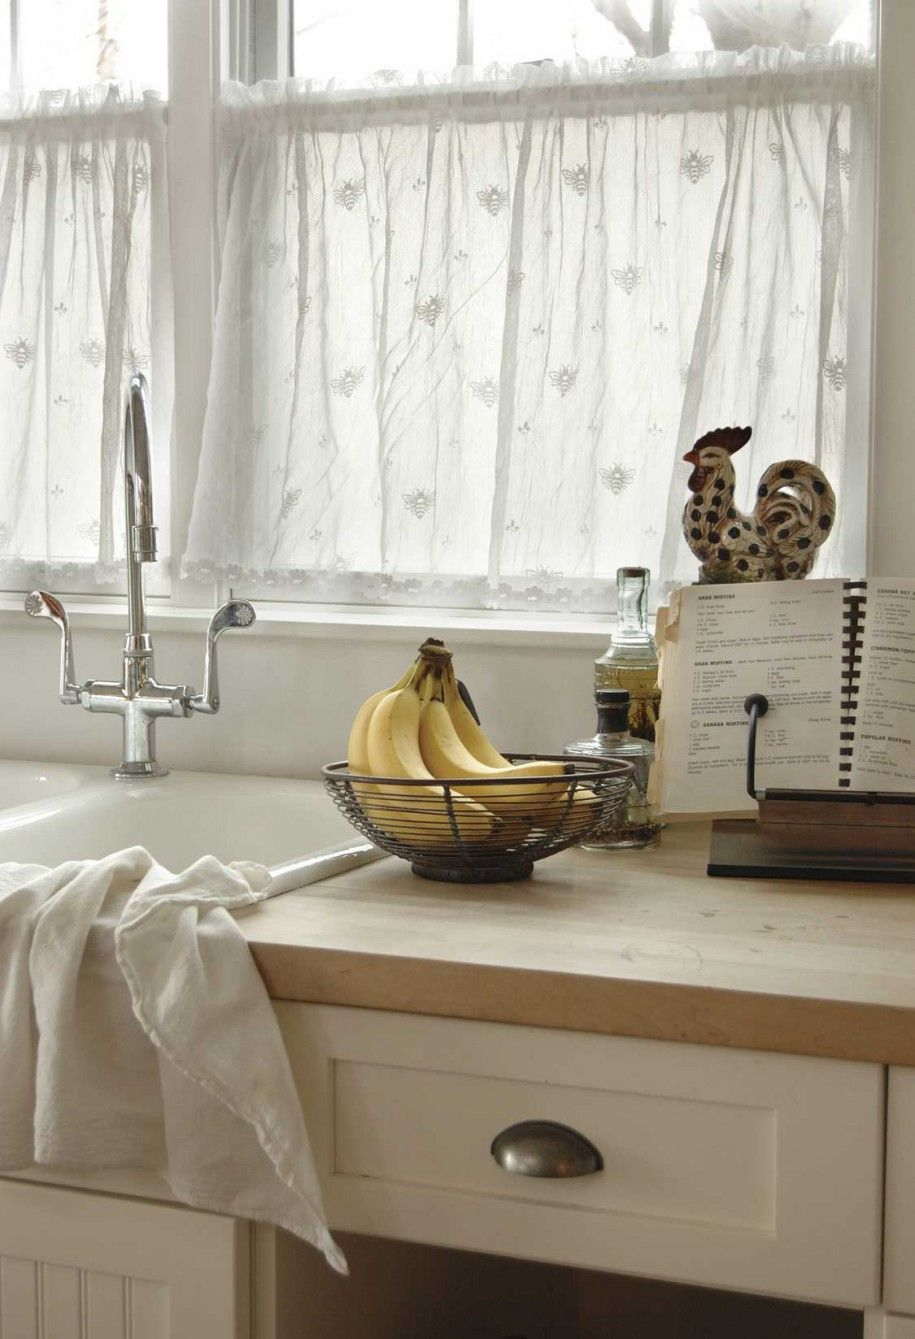 Kitchen window curtain  Mert lehet szép is  house renovations  Pinterest  Bathroom window